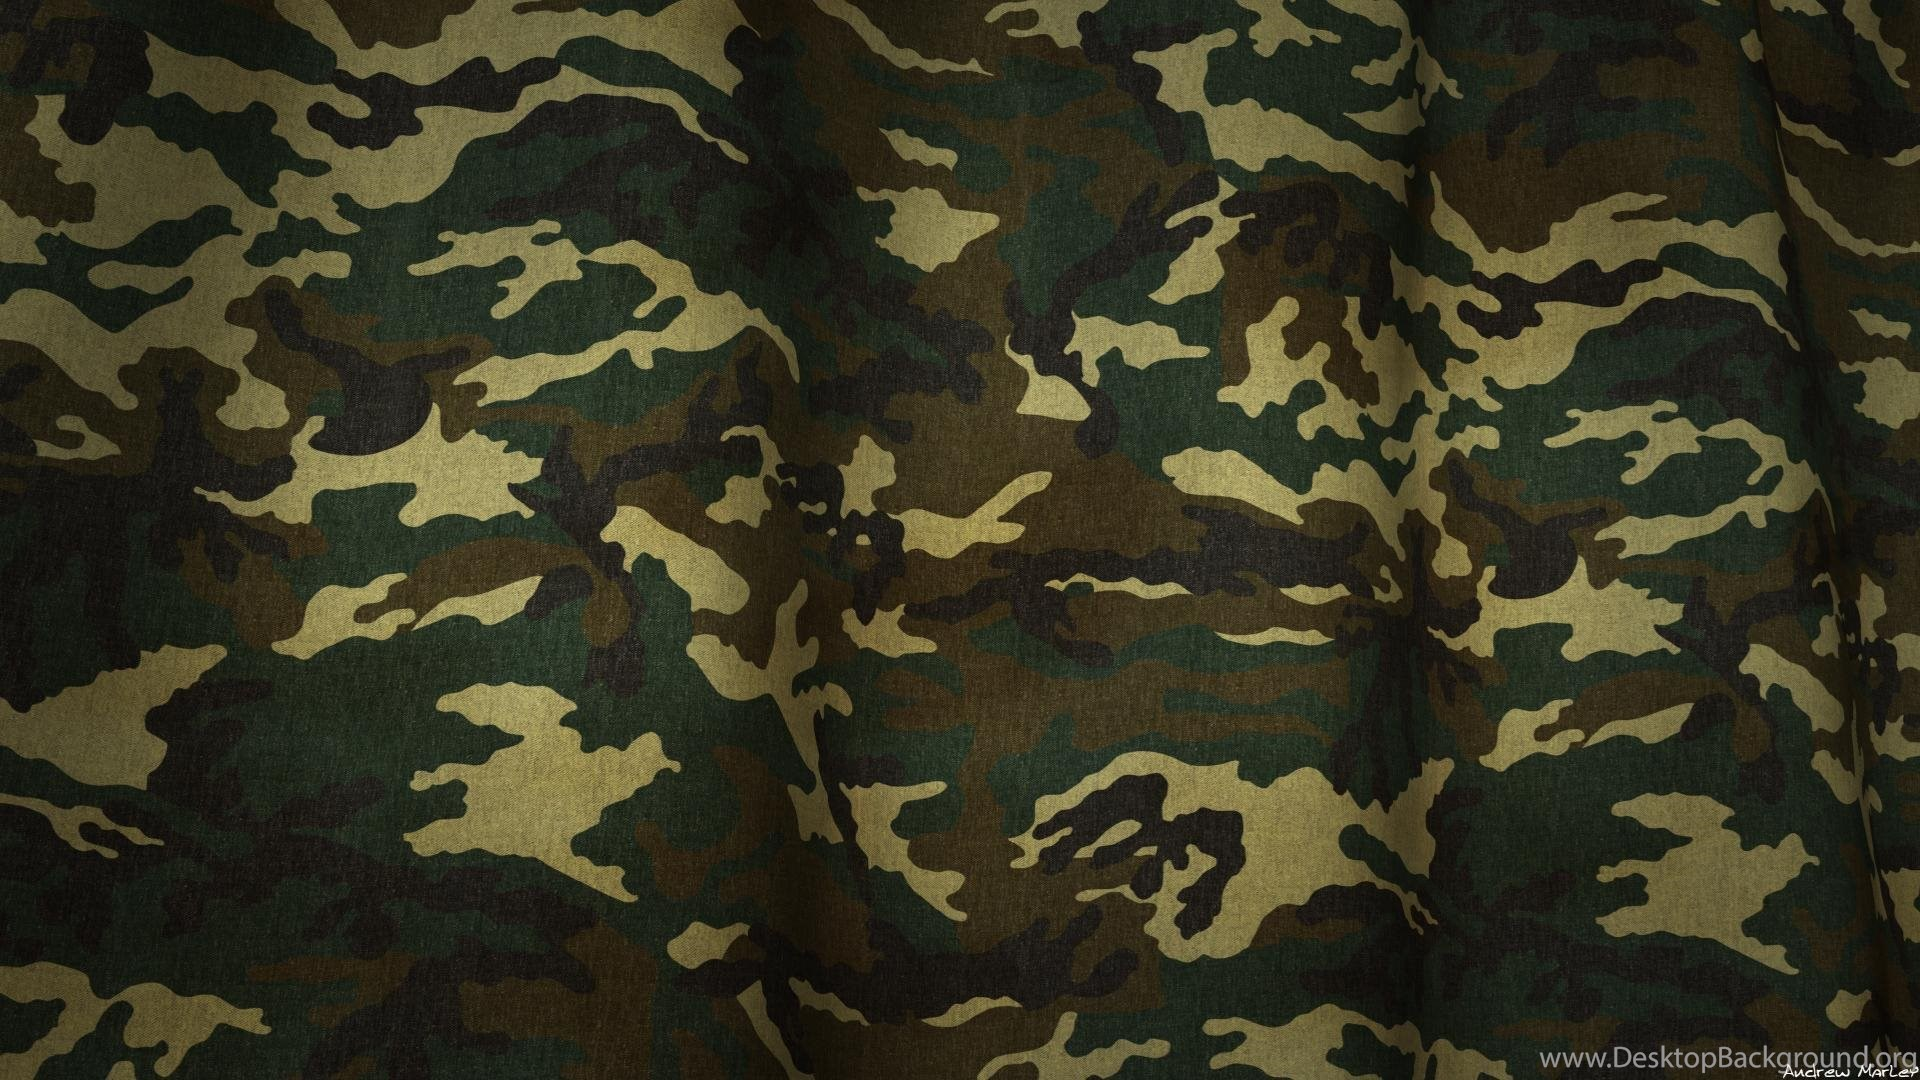 army backgrounds for iphone wallpapers high quality desktop background